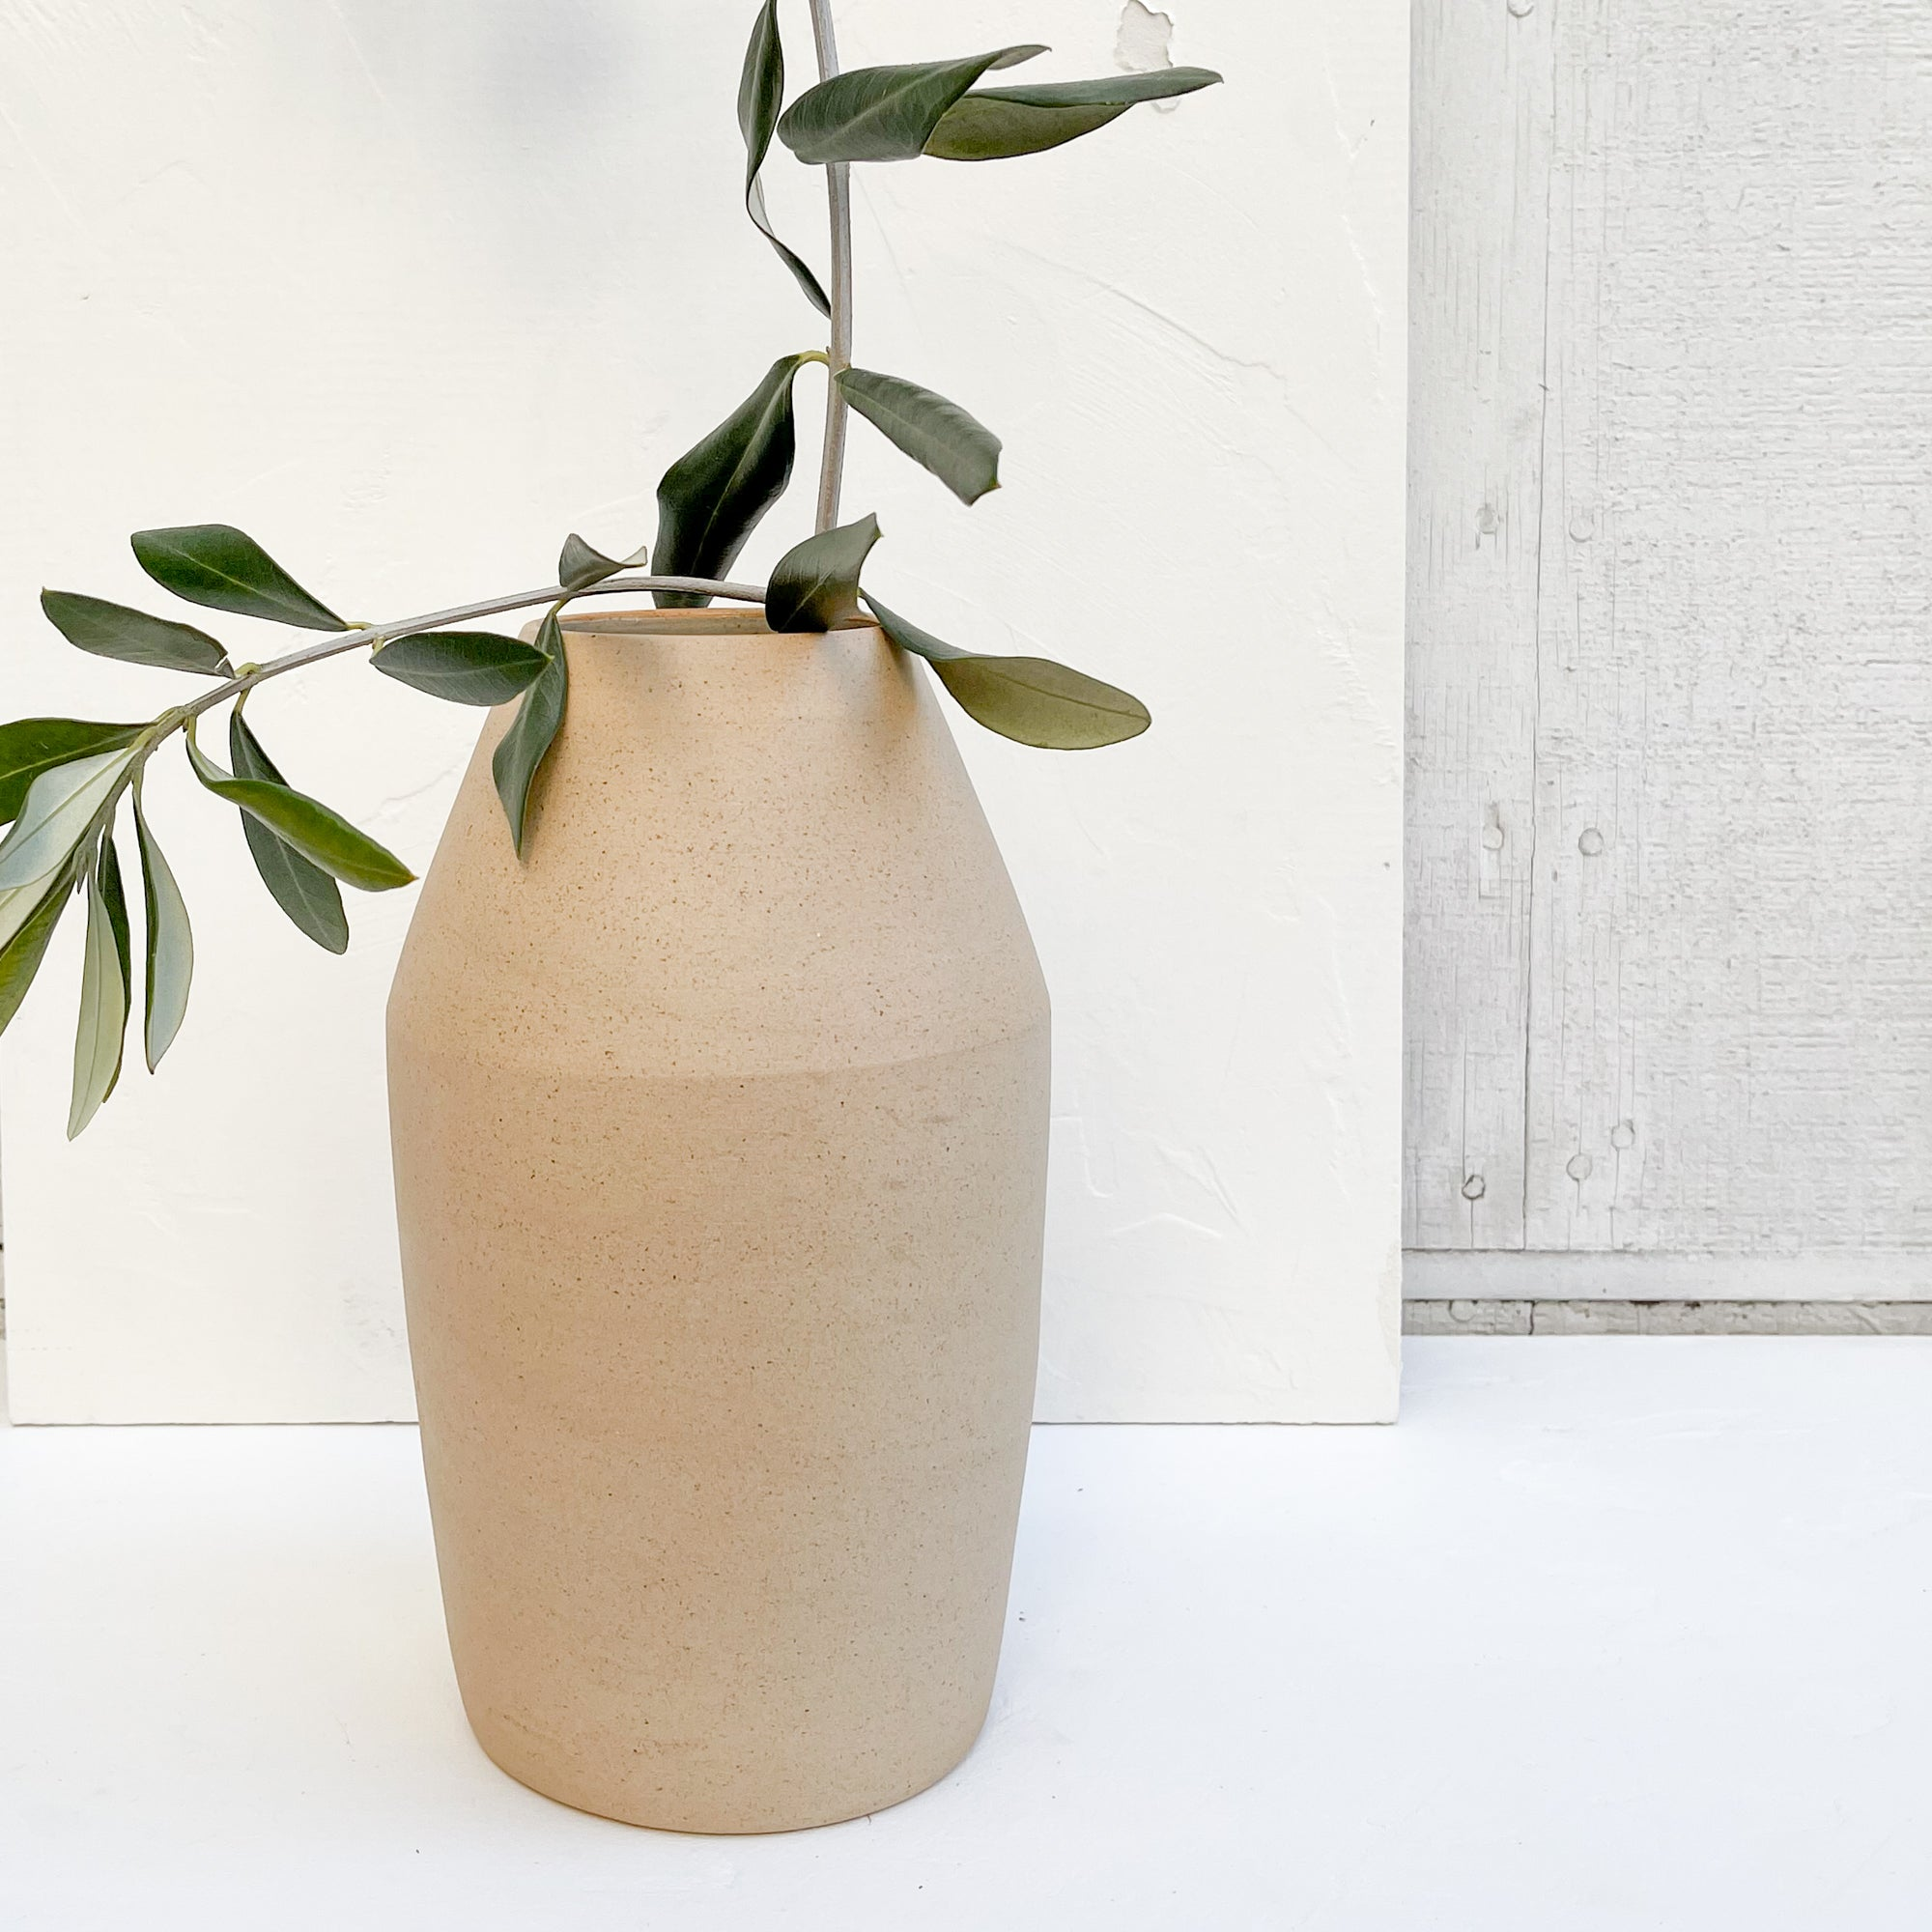 A terra-cotta ceramic vase with dry stems.